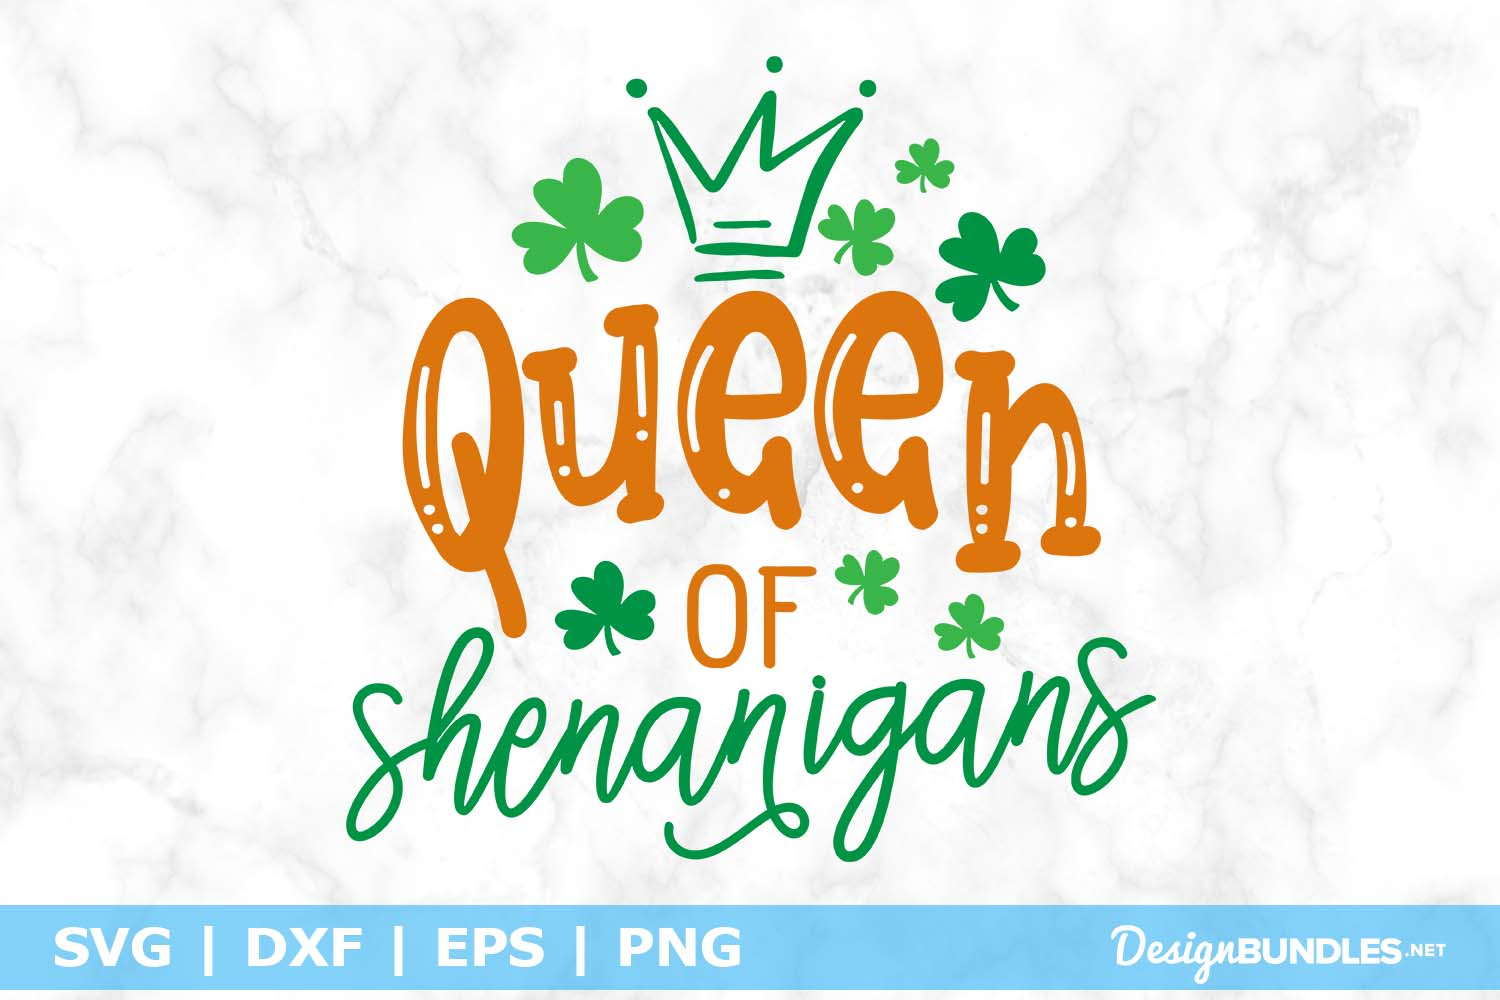 Queen of Shenanigans SVG File example image 1